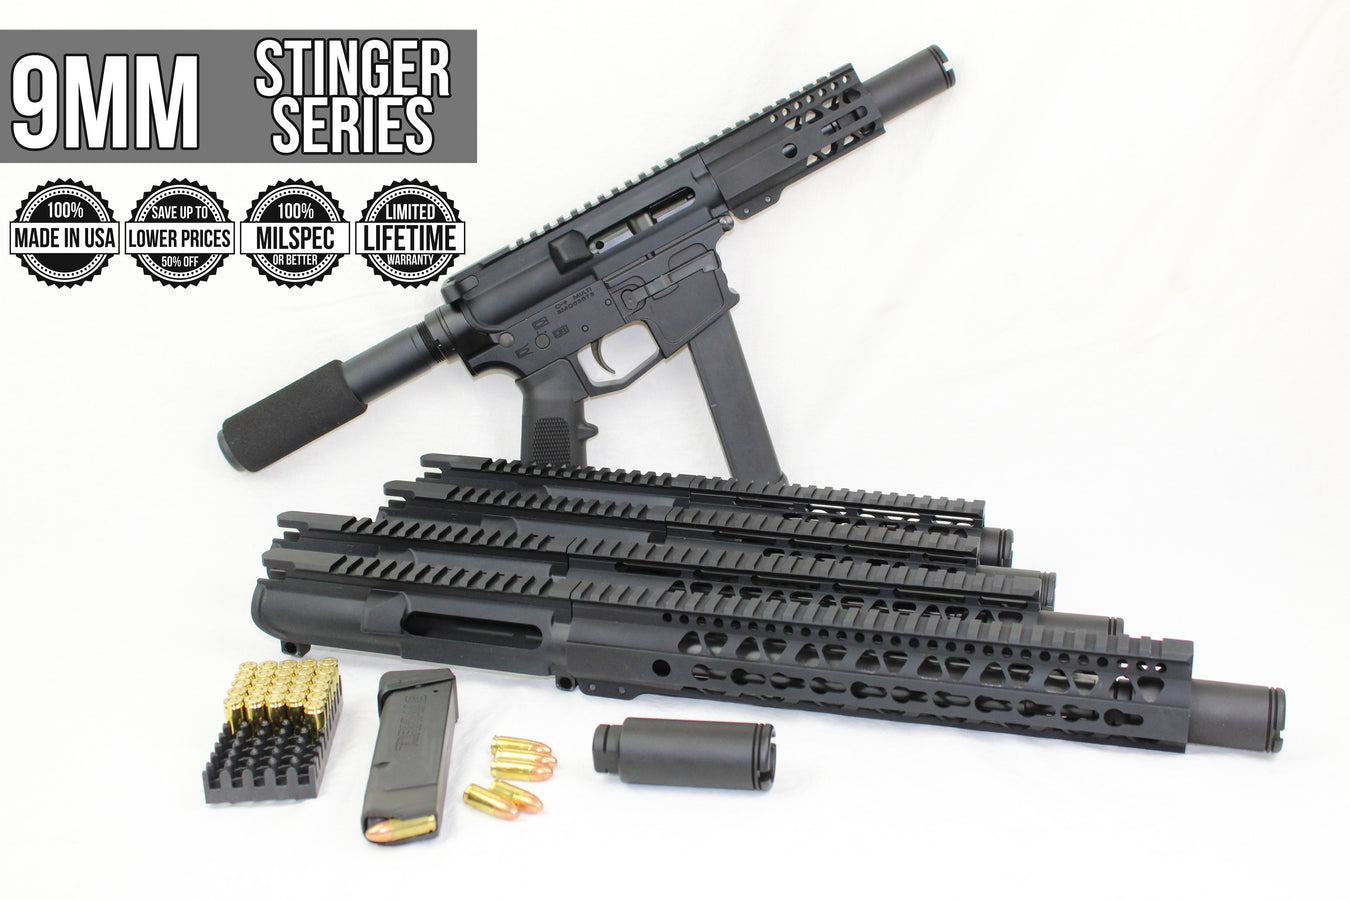 9mm 'Stinger Series' PDW Assembled Uppers